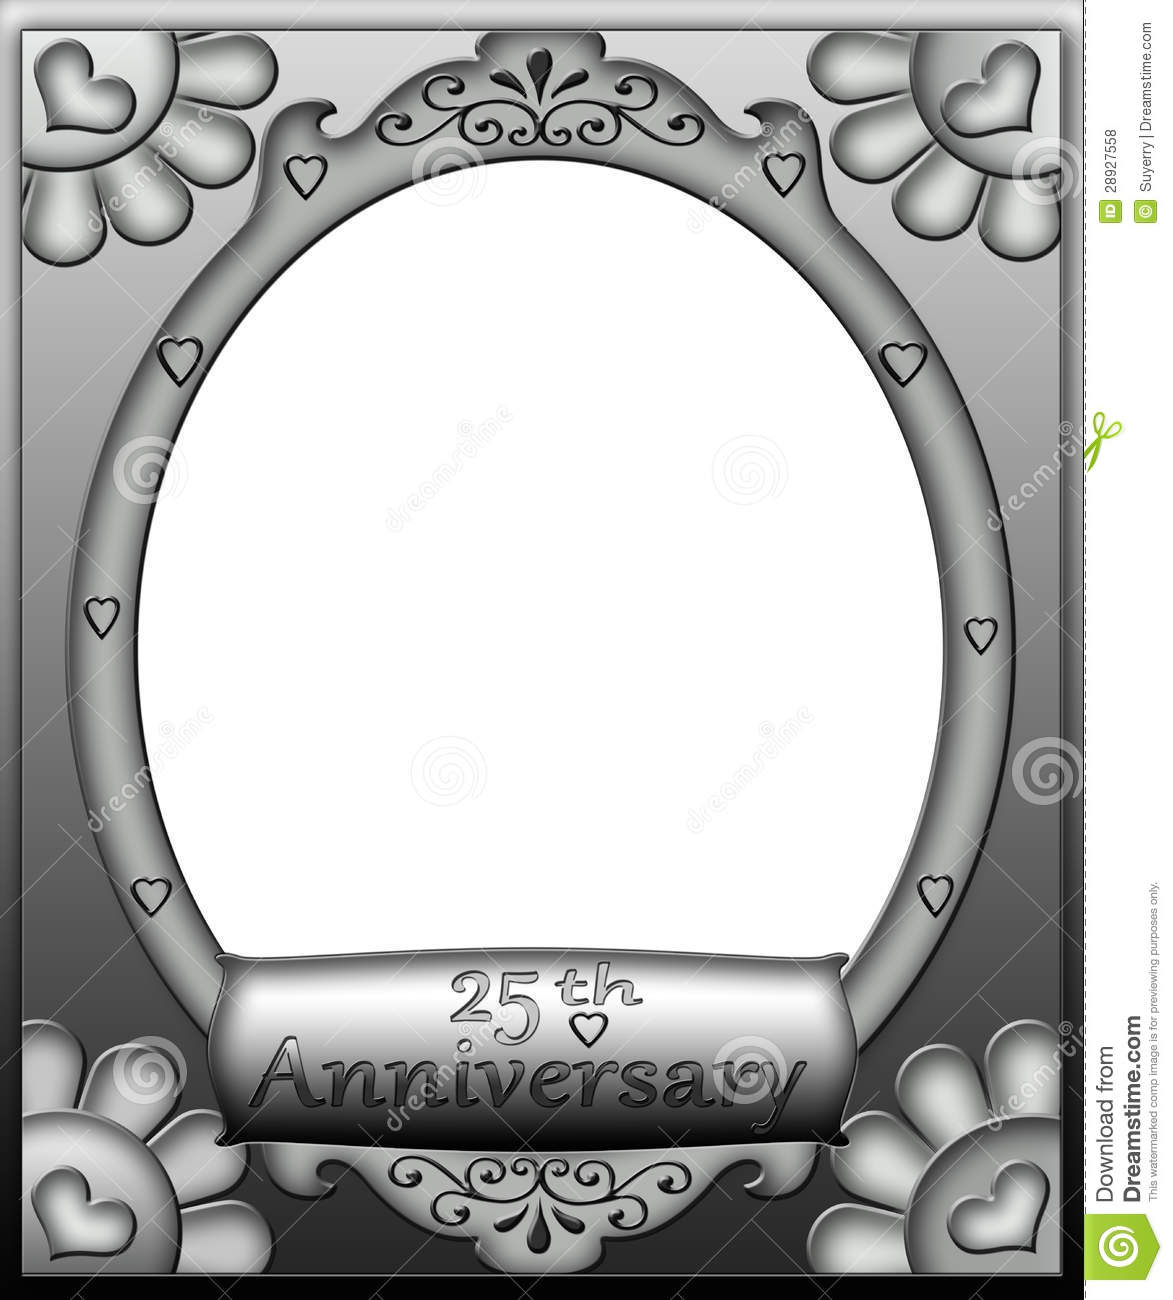 25th Anniversary Frame Border Royalty Free Stock Photos ...